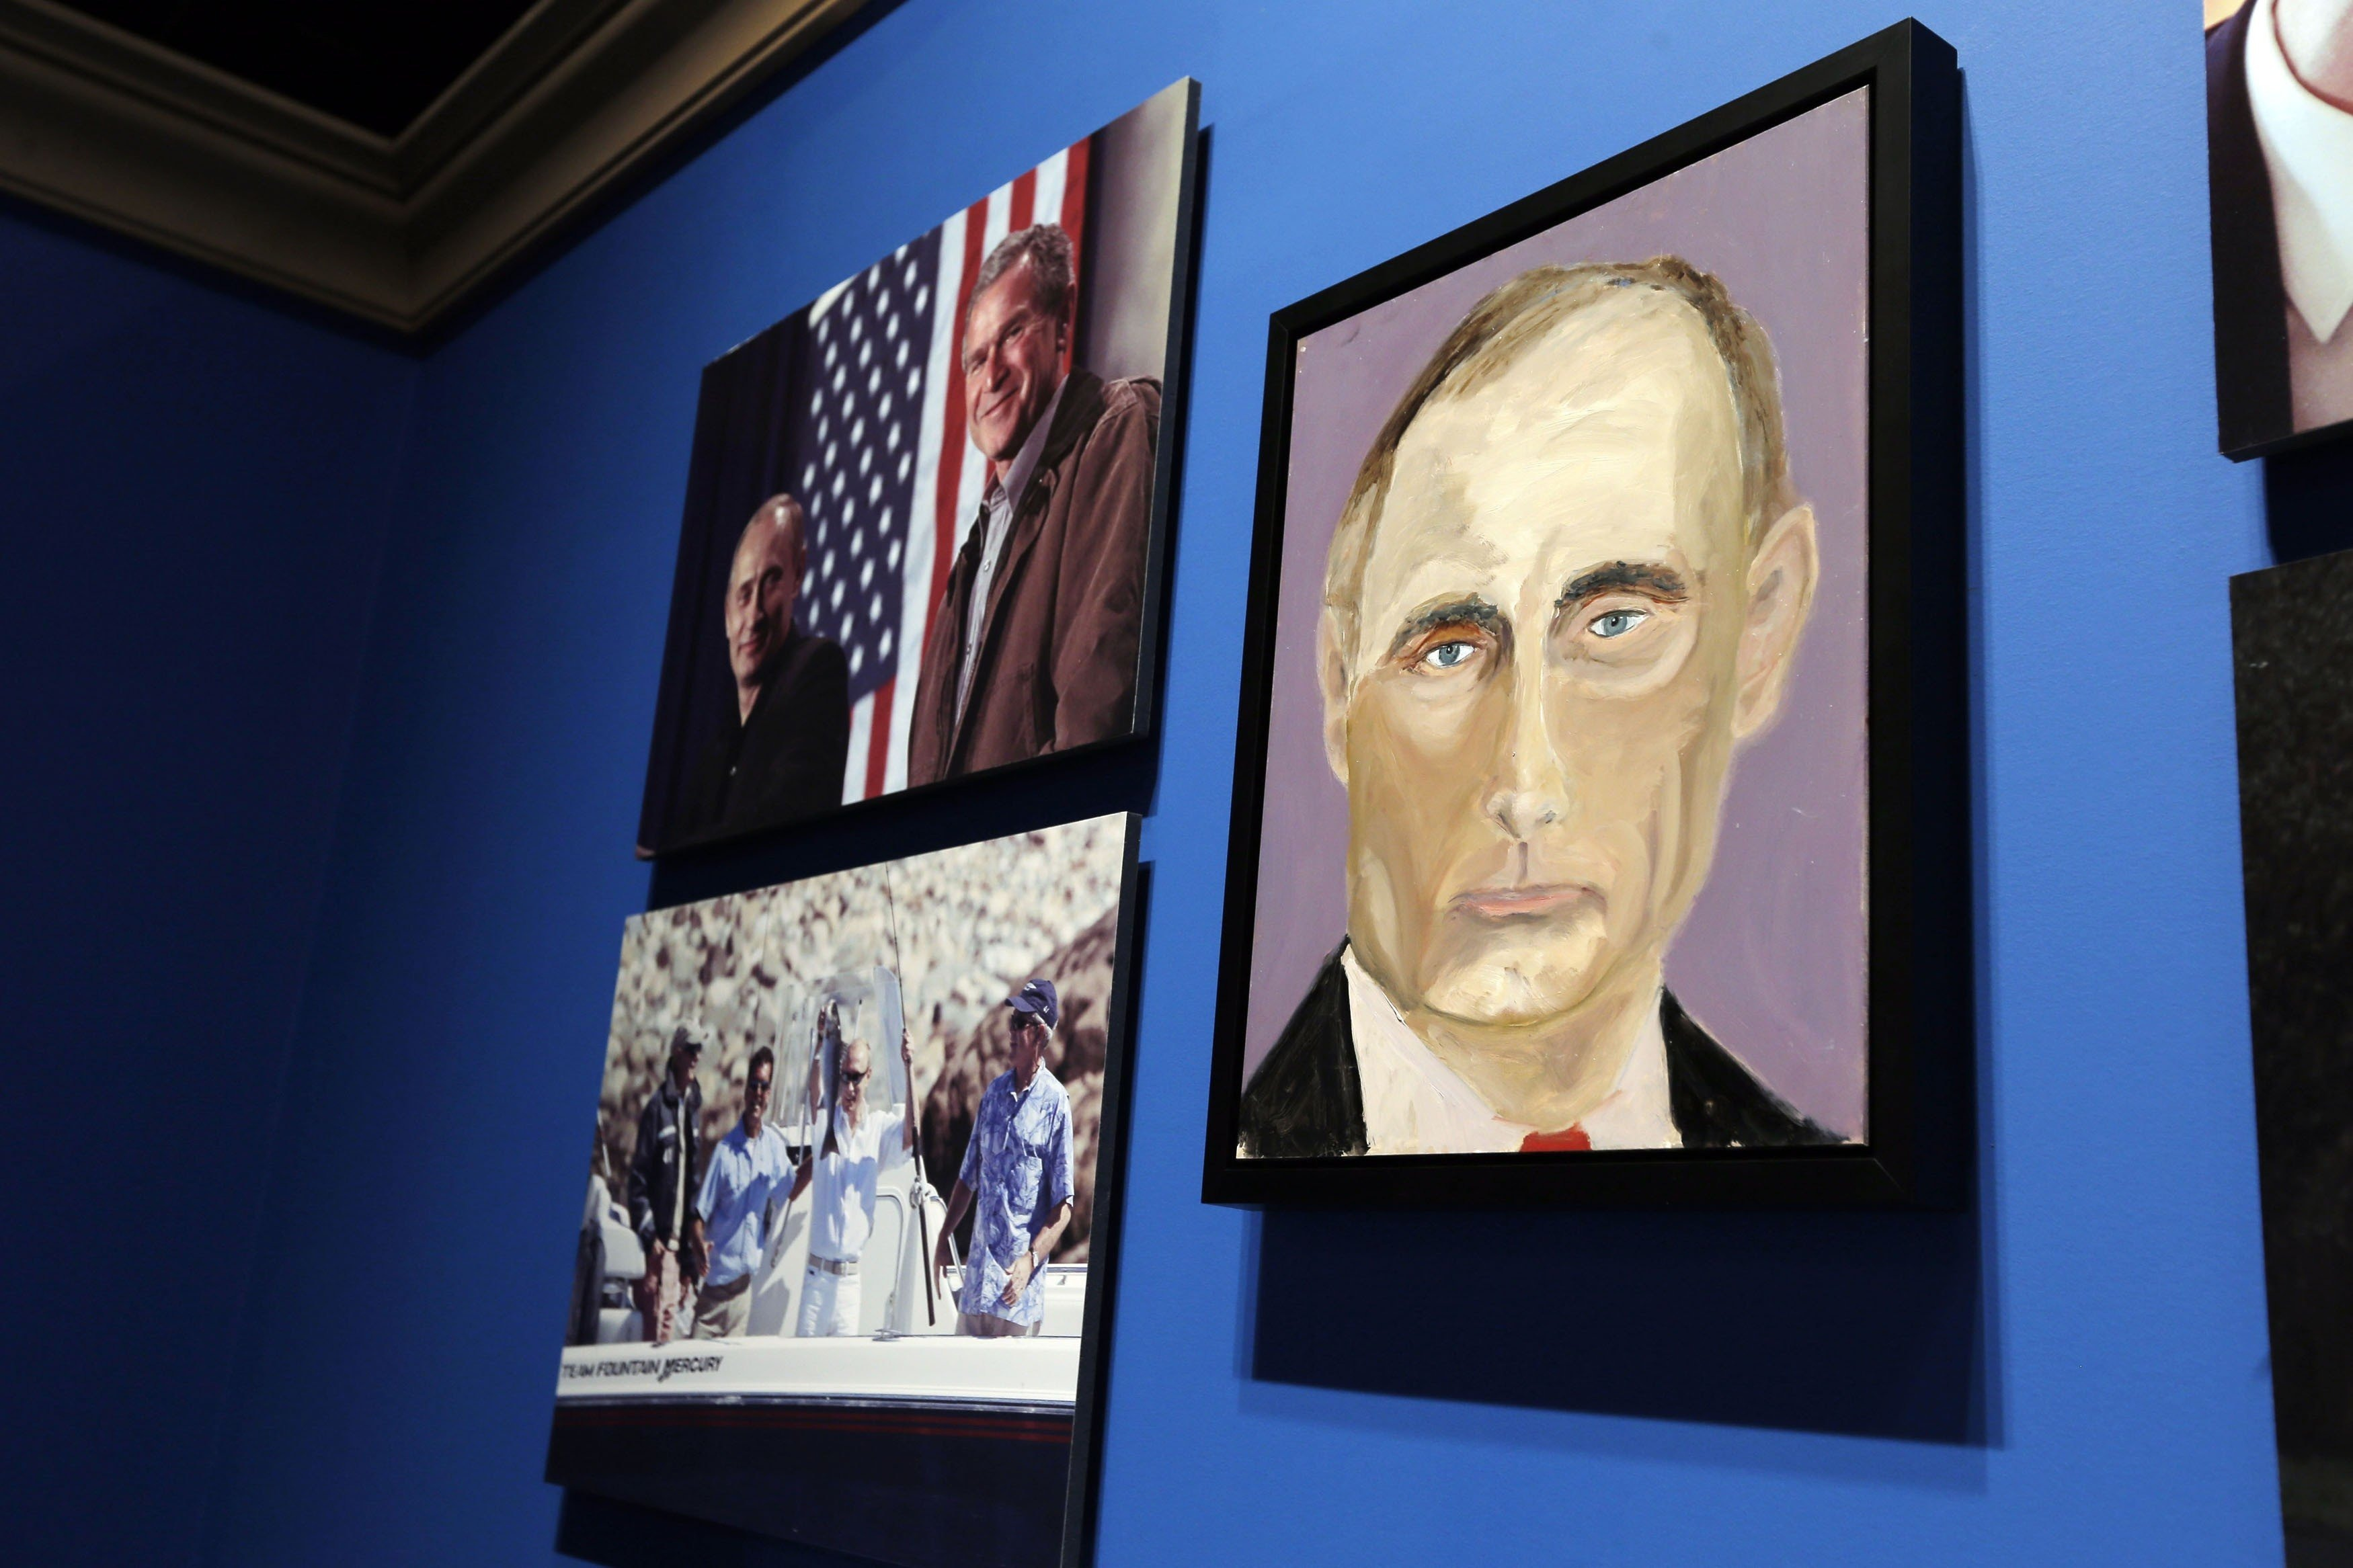 A portrait of Russian President Vladimir Putin, painted by former U.S. President George W. Bush, is displayed at  The Art of Leadership: A President's Personal Diplomacy  exhibit at the Bush Presidential Library and Museum in Dallas, April 4, 2014.